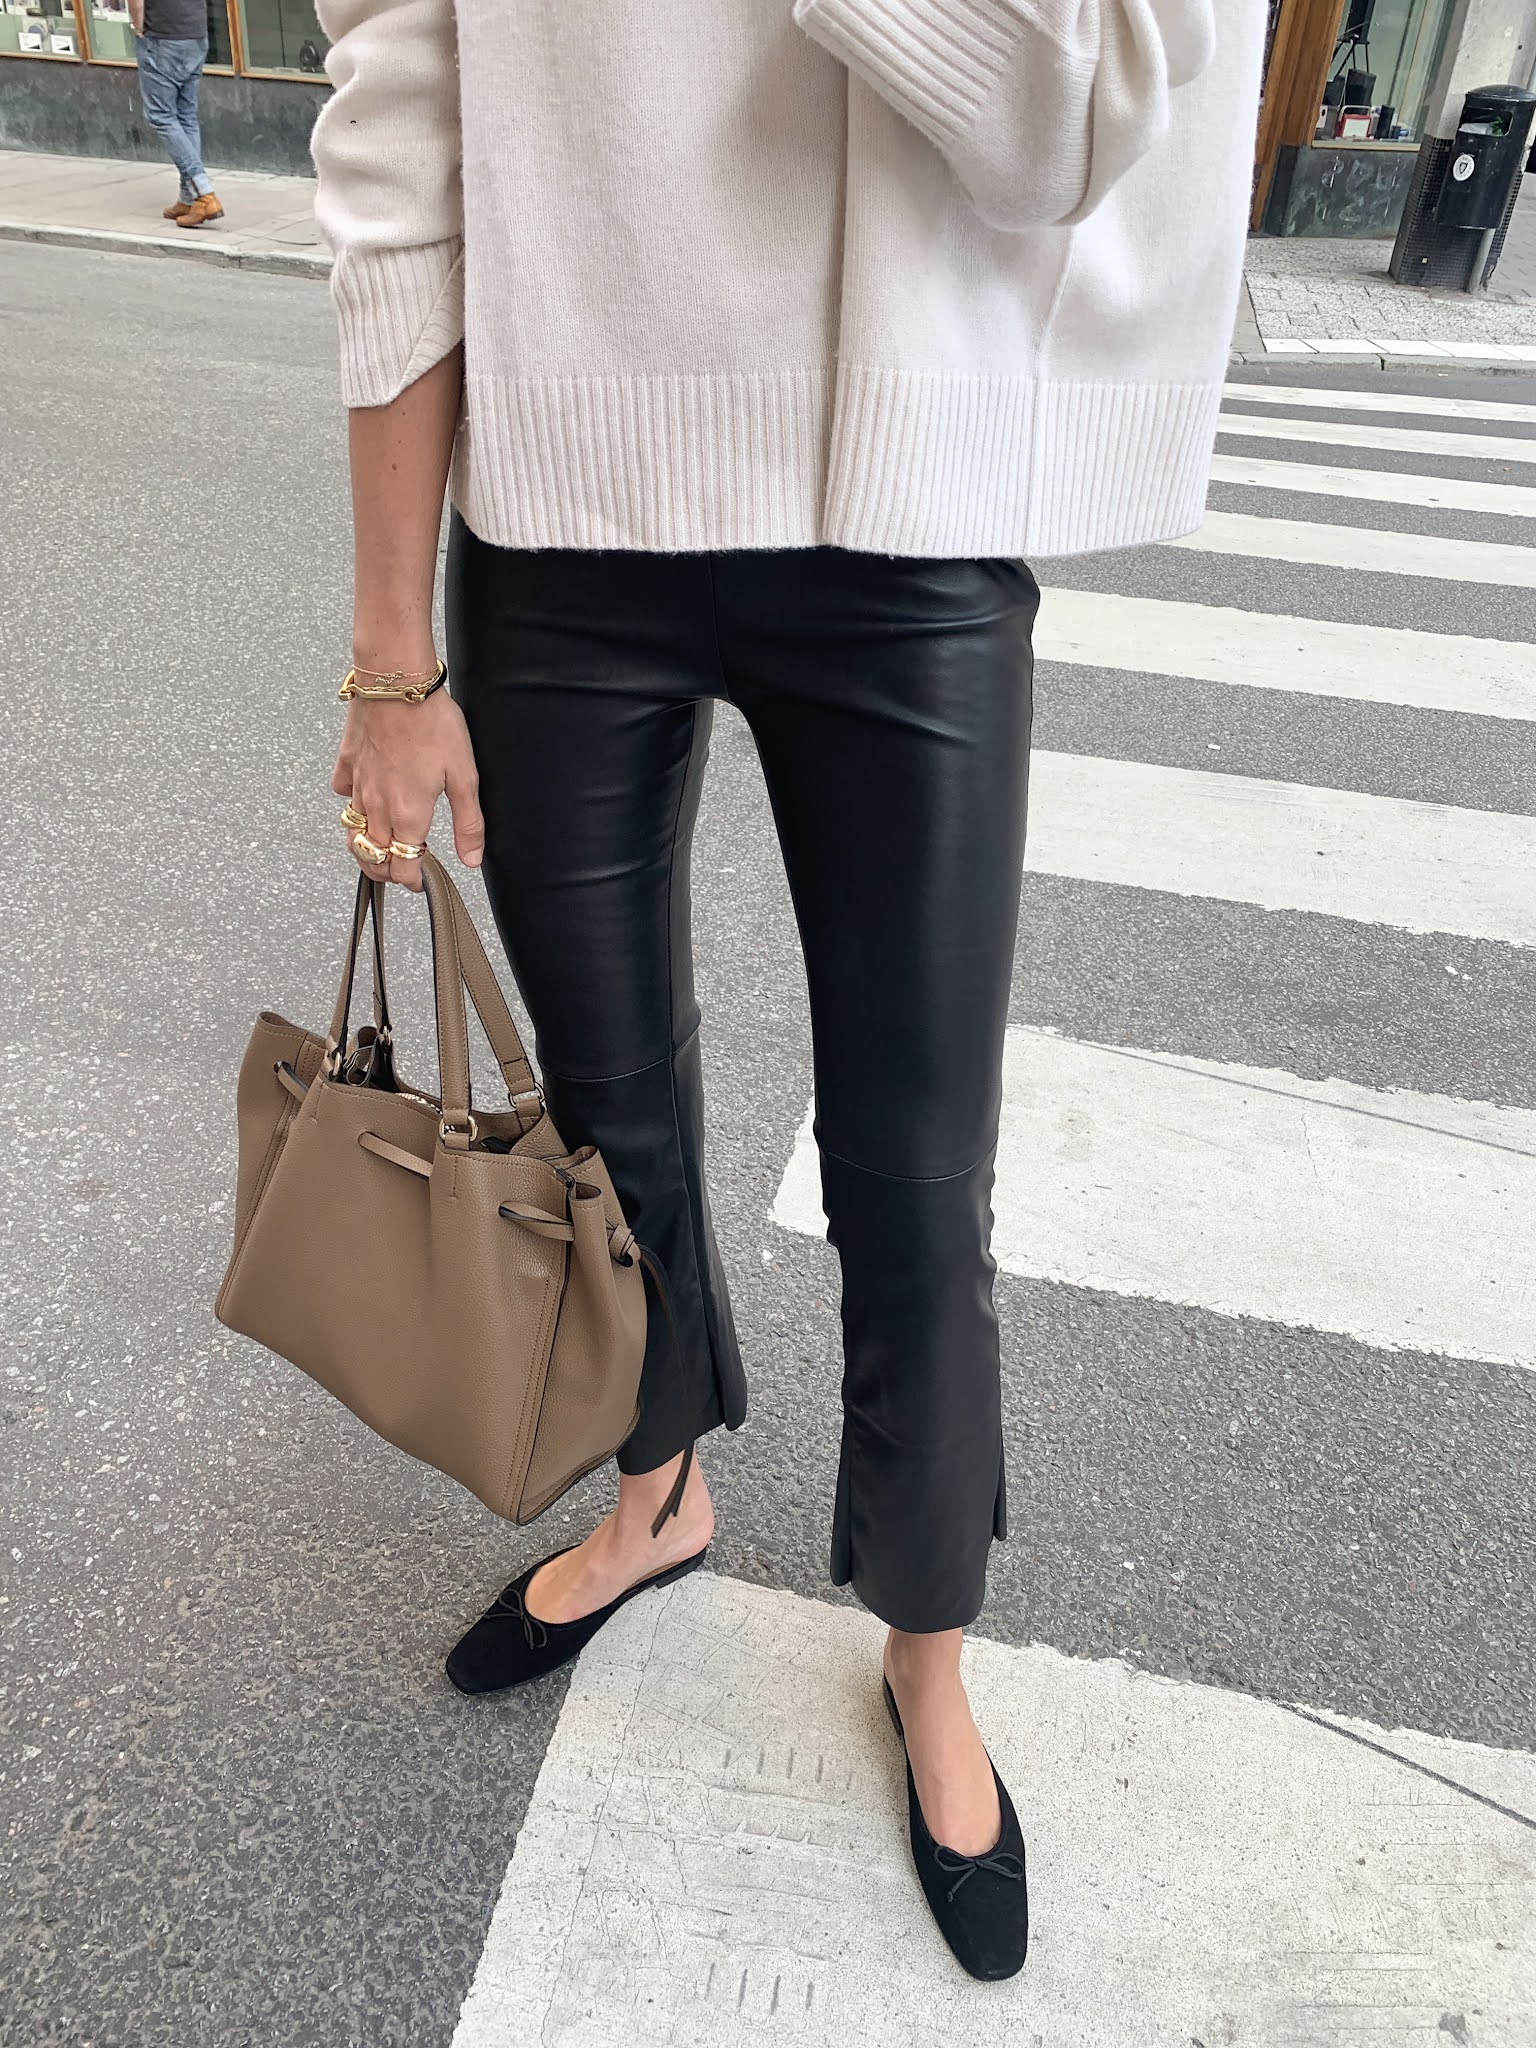 Best Black Flats — Fall outfit idea with a cream sweatre, leather pants, and Manolo Blahnik mule flats